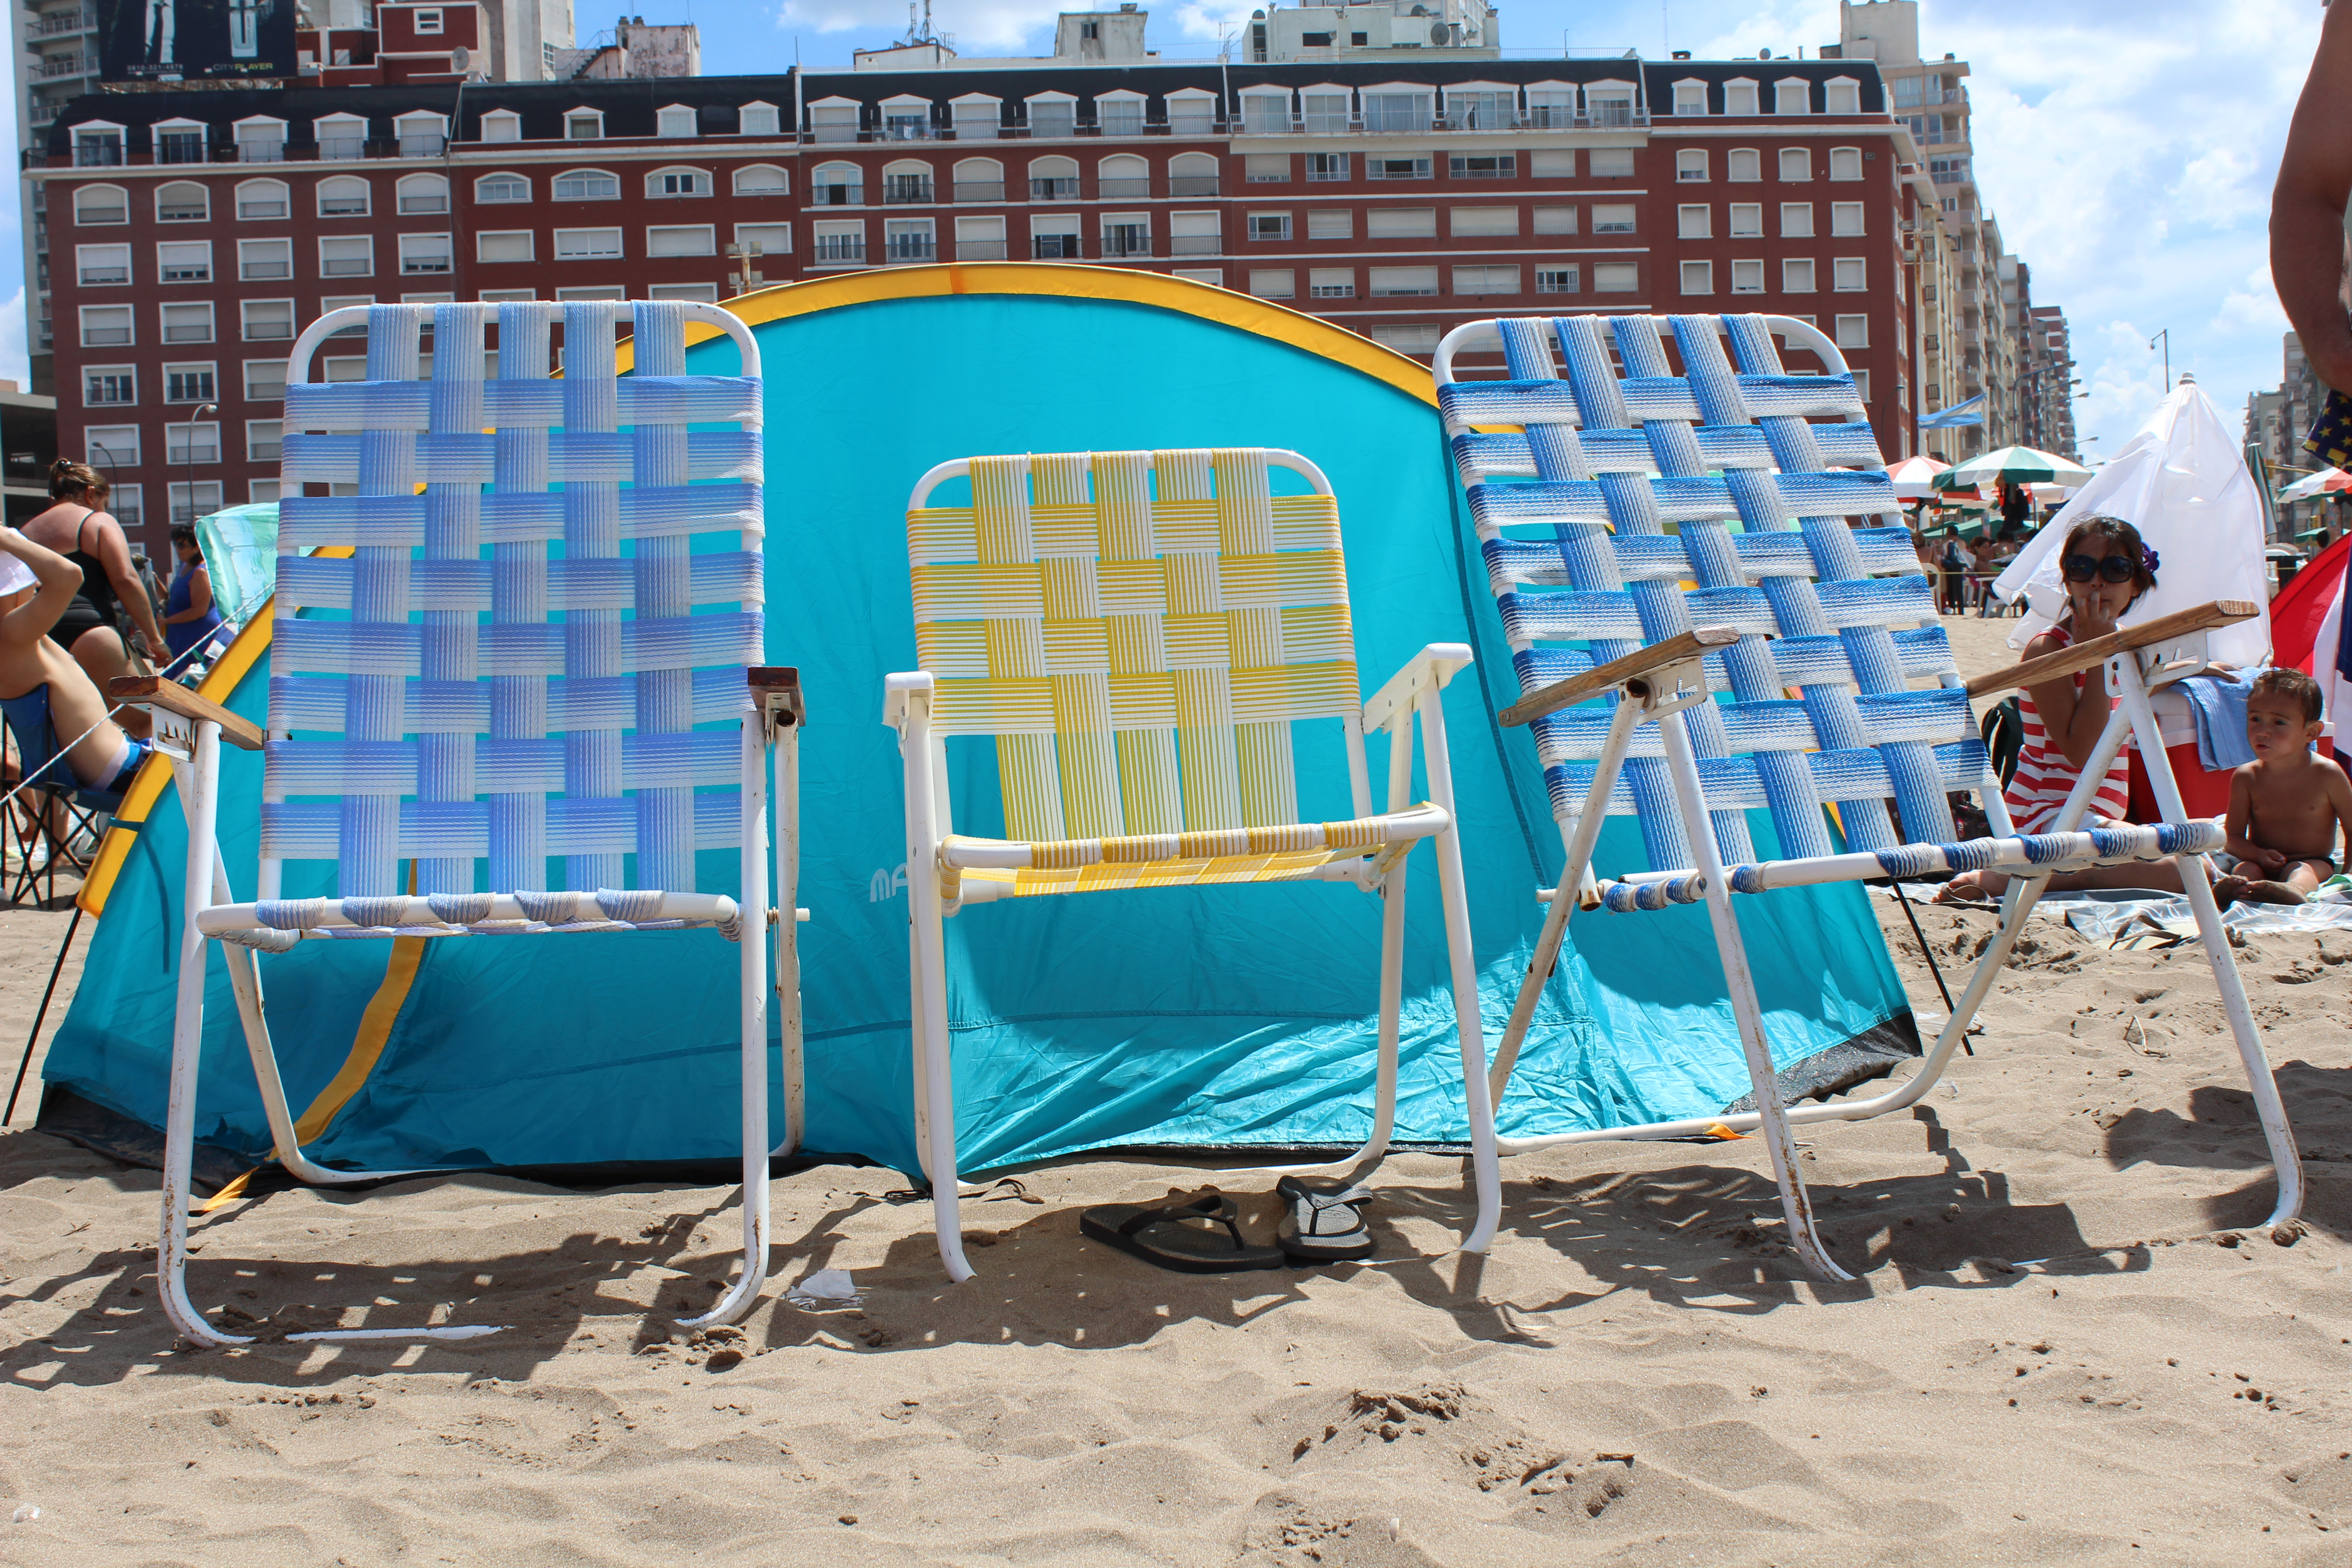 Best beach chair 2013 - Sometimes All You Need Are Some Beach Chairs And The Sun